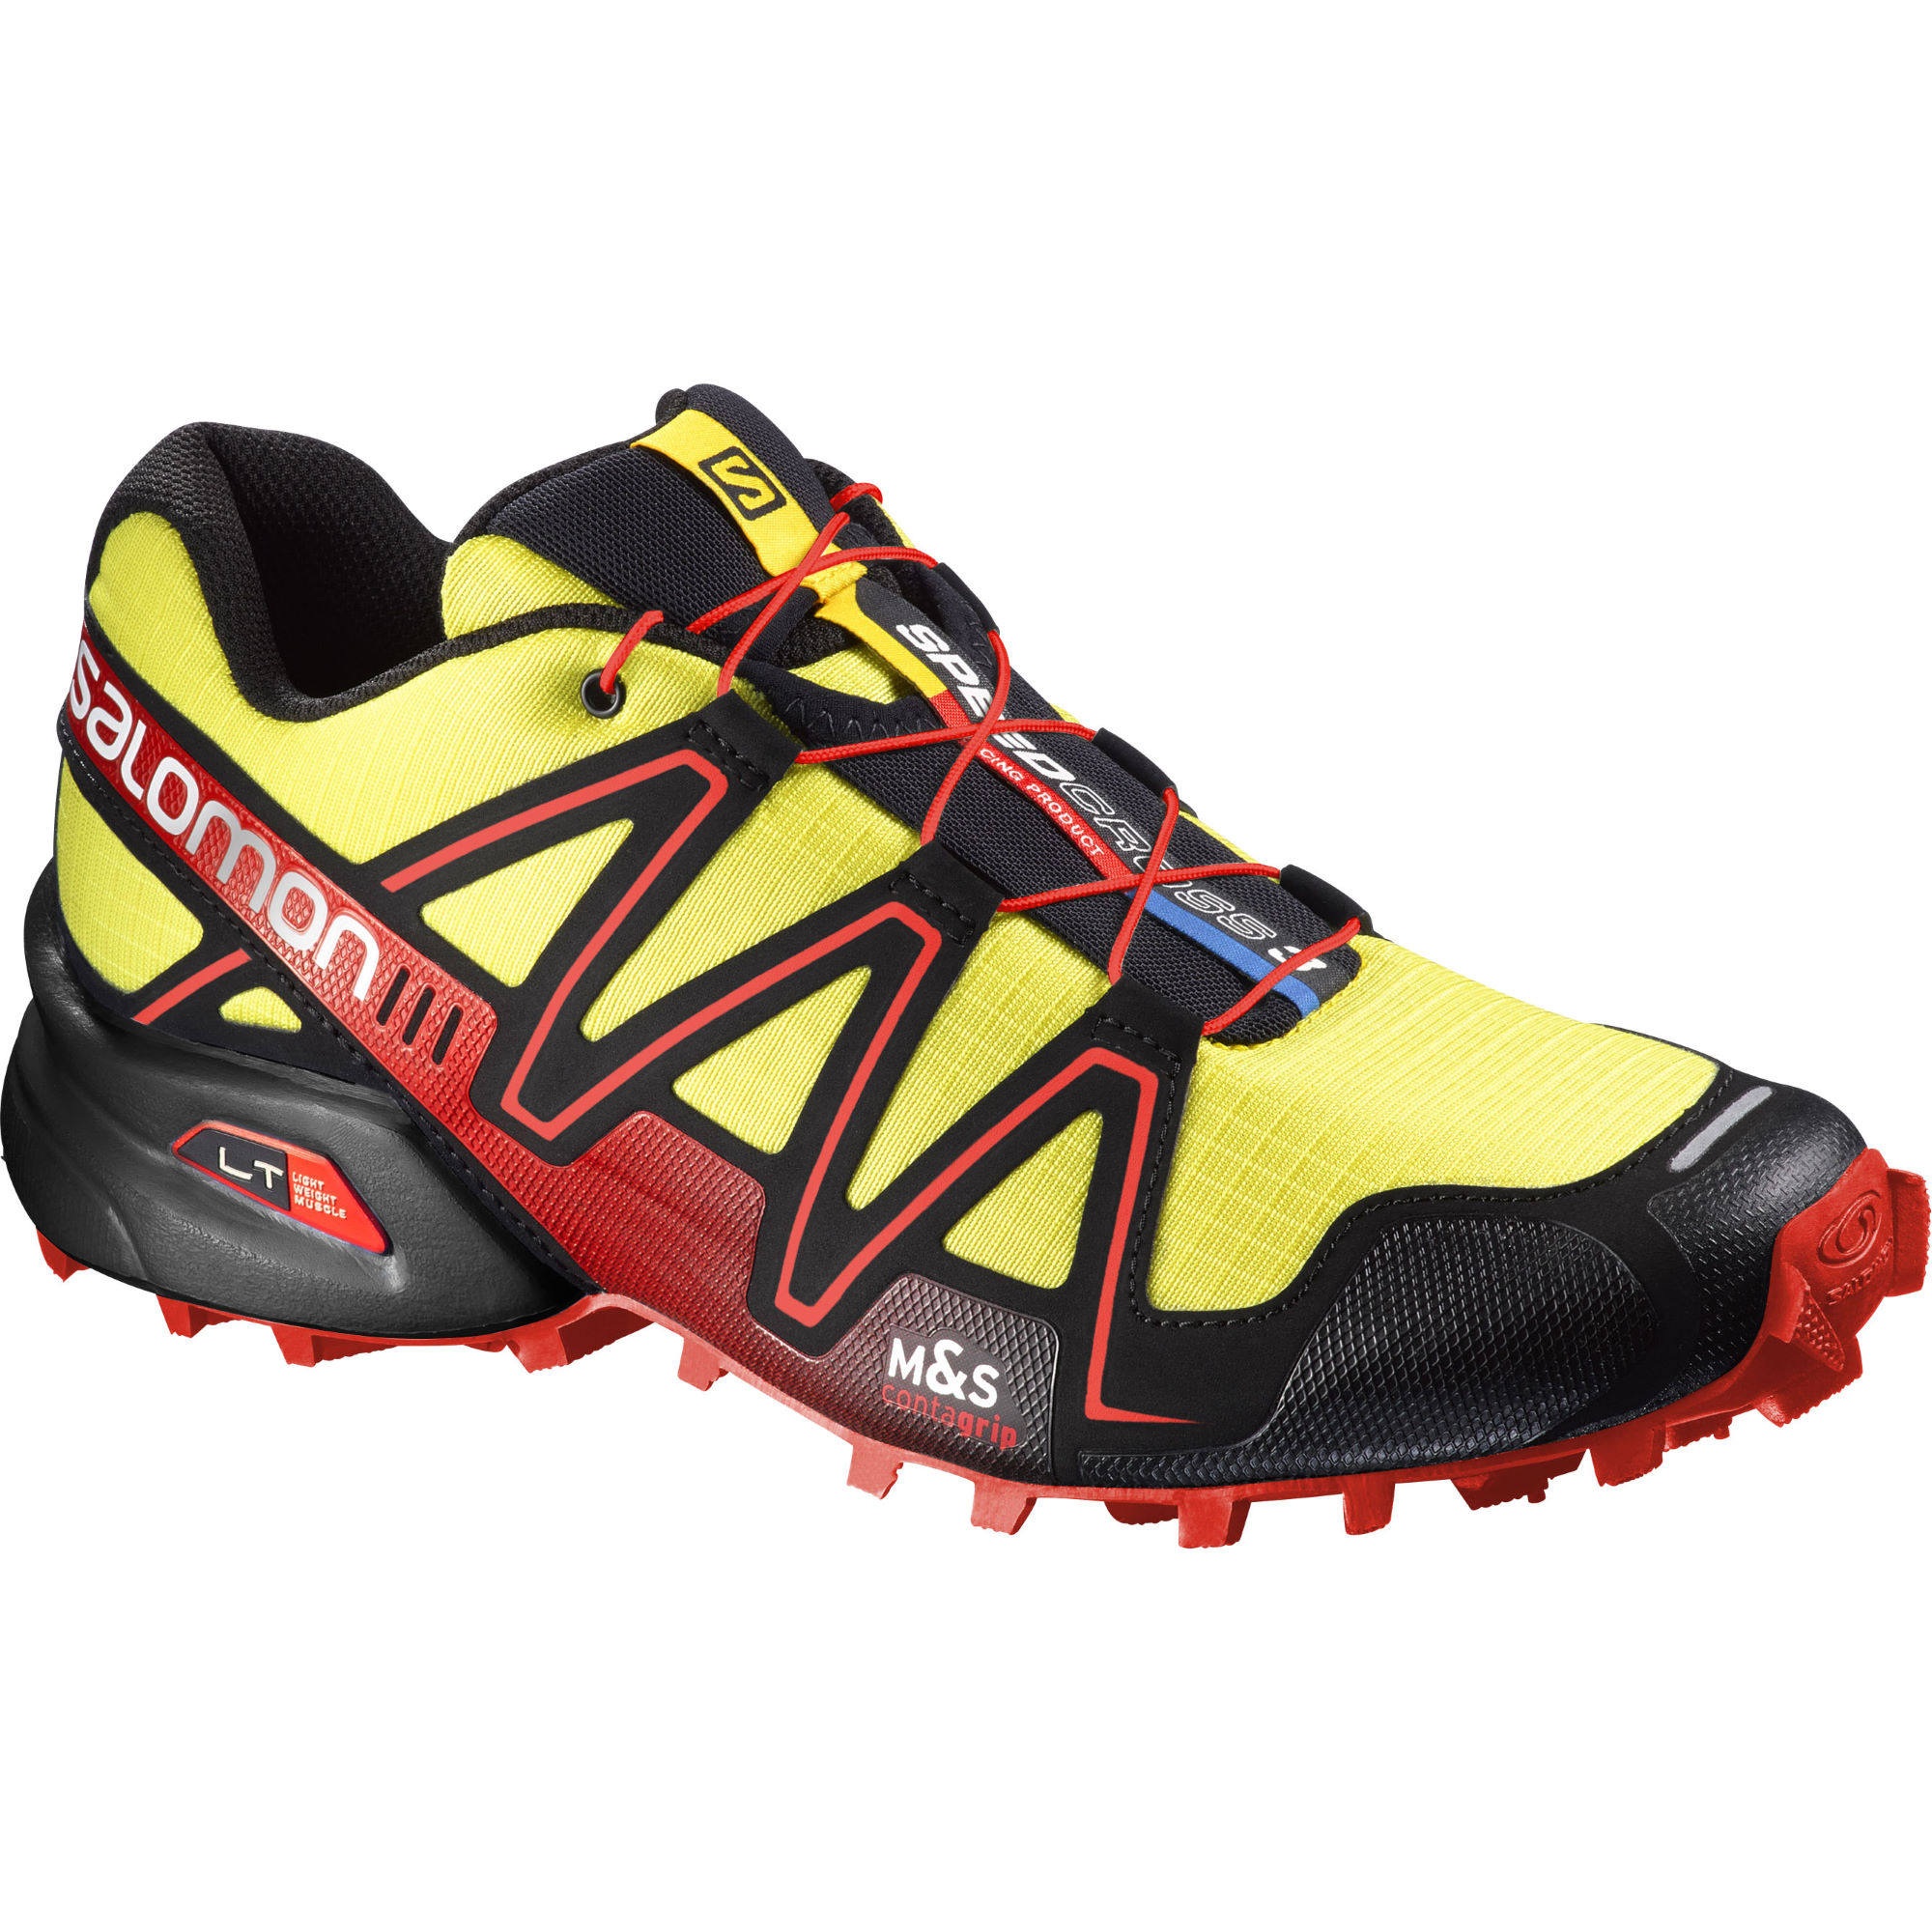 salomon speedcross, basket salomon, salomon speedcross 3 gtx, salomon xa pro 3d gtx, salomon chaussures, salomon x scream, salomon running,